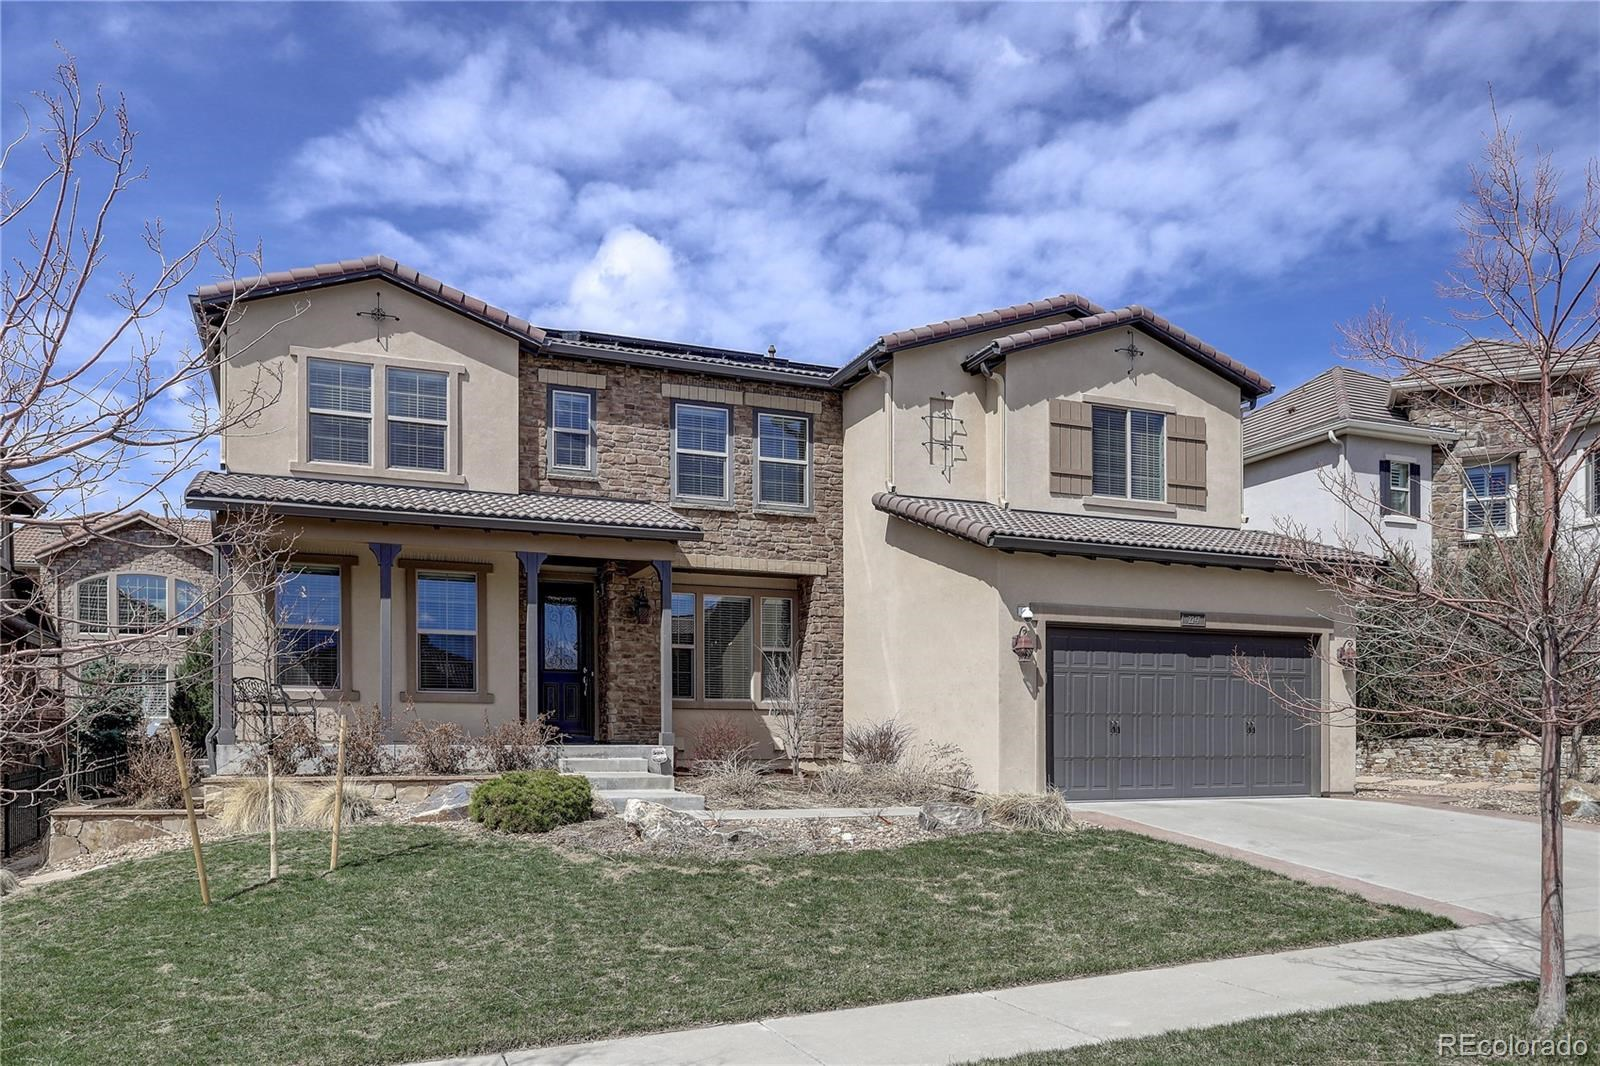 MLS# 8360577 - 1 - 2247 S Isabell Court, Lakewood, CO 80228